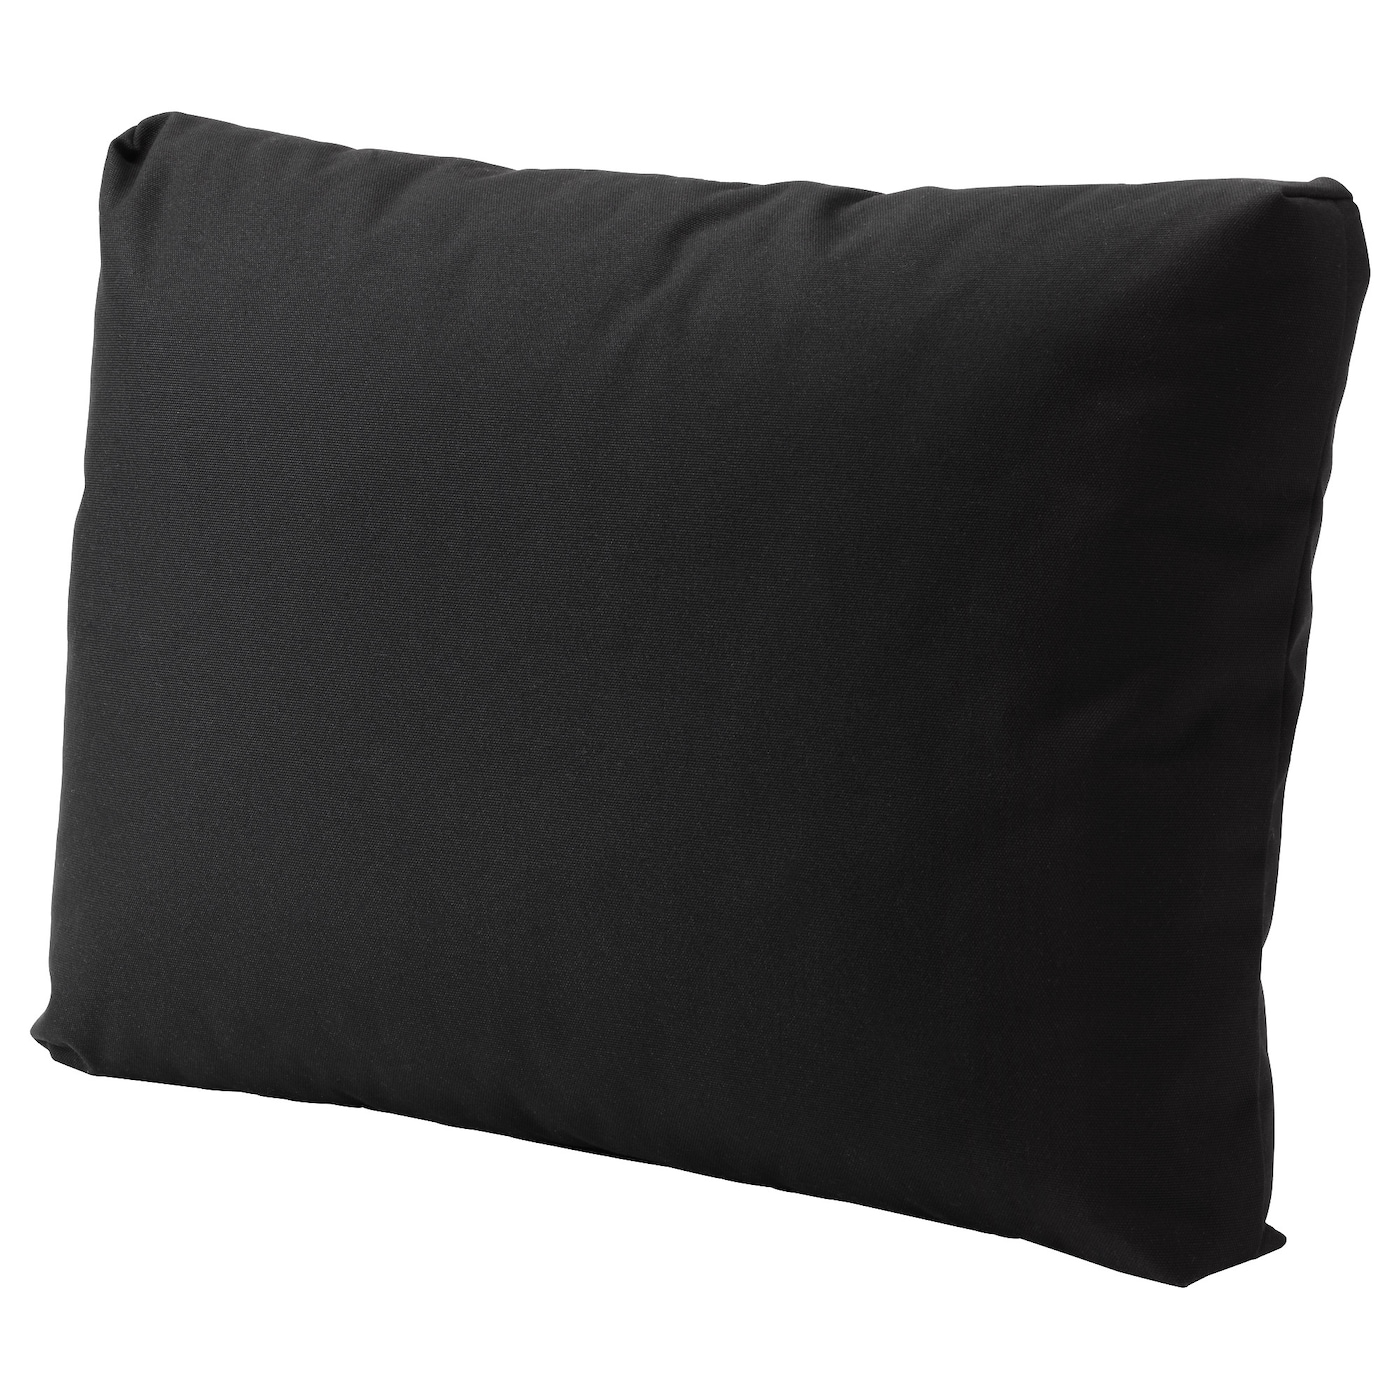 IKEA KUNGSÖ back cushion, outdoor The colour stays fresh for longer as the cover is fade resistant.